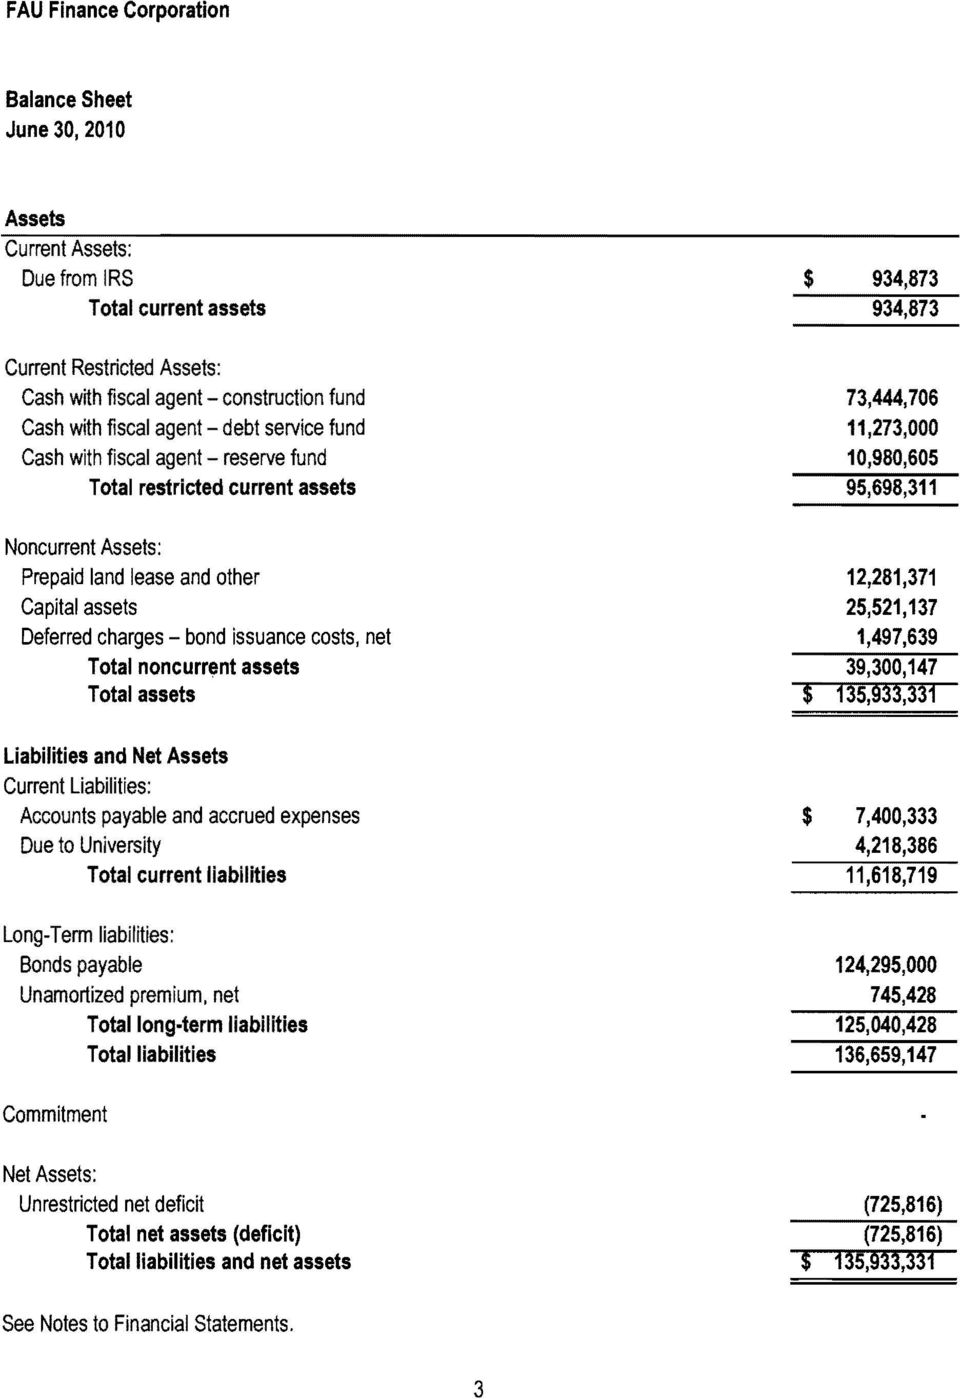 Deferred charges bond issuance costs, net Total noncurr,nt assets Total assets $ 12,281,371 25,521,137 1,497,639 39,300,147 ~ 35, 33,33~ Liabilities and Net Assets Current Liabilities: Accounts